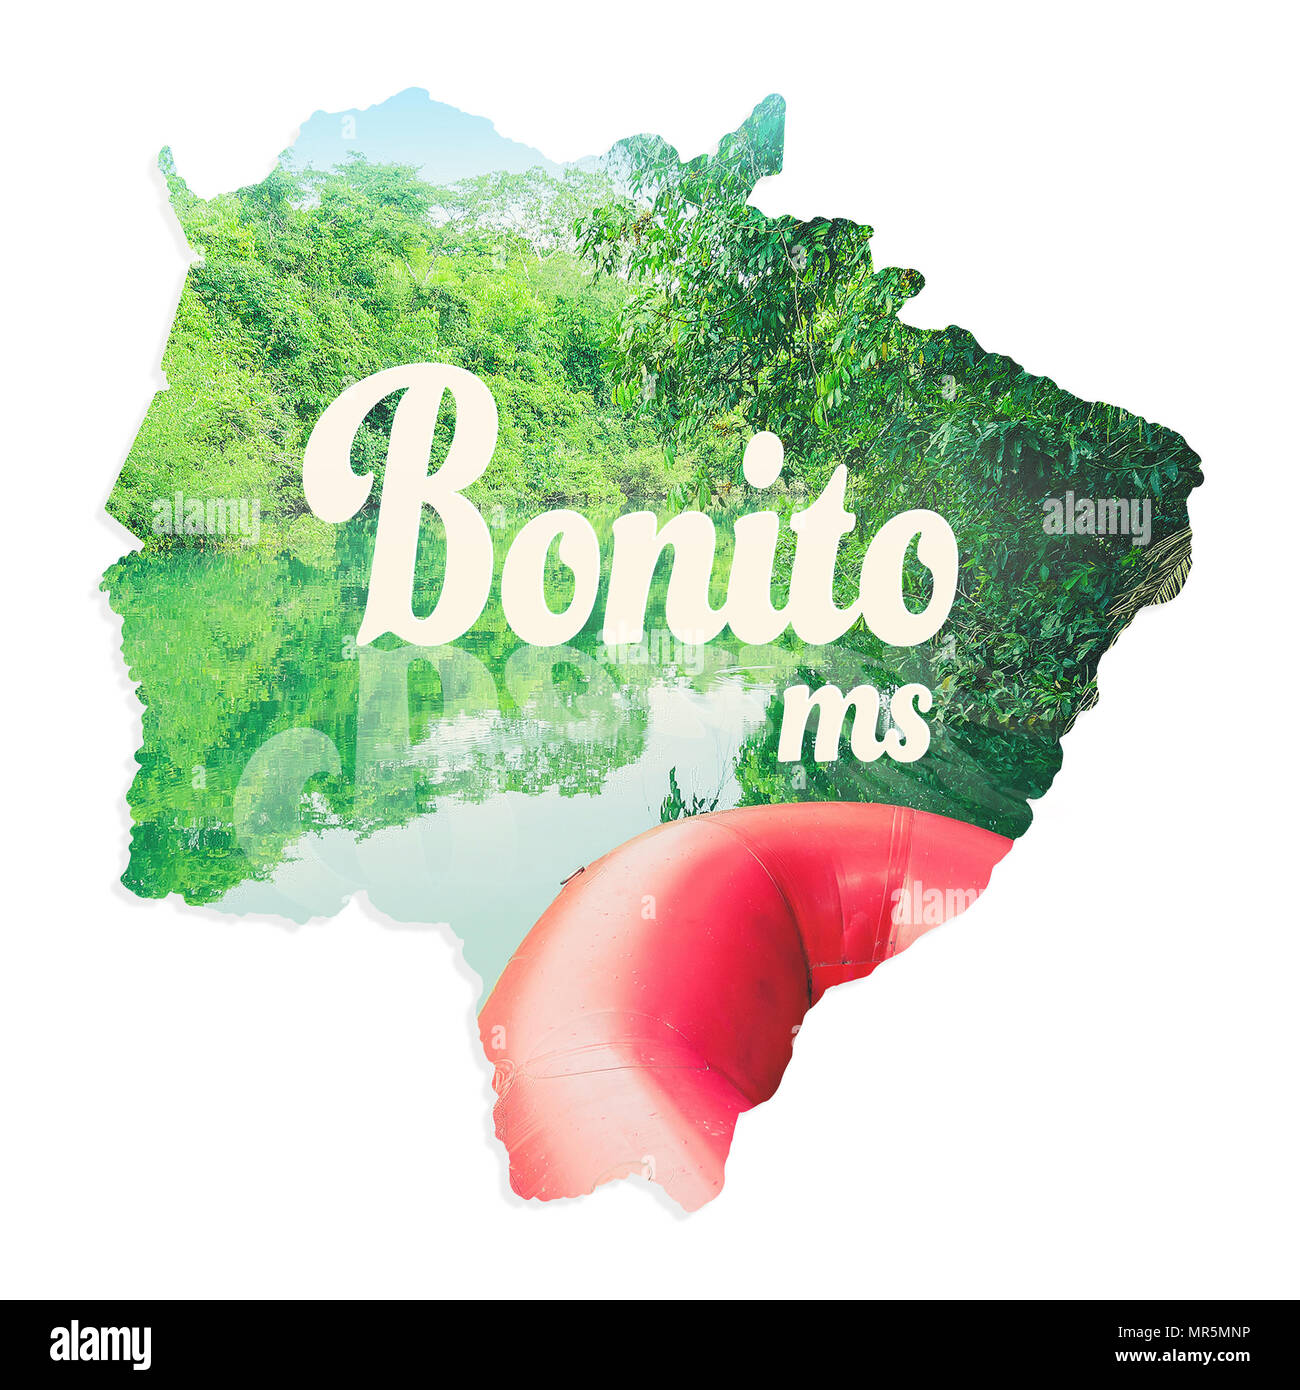 Map of Mato Grosso do Sul state with image of Bonito MS inside, the eco touristic city, written 'Bonito MS'. Illustration concept with a photo of boat Stock Photo